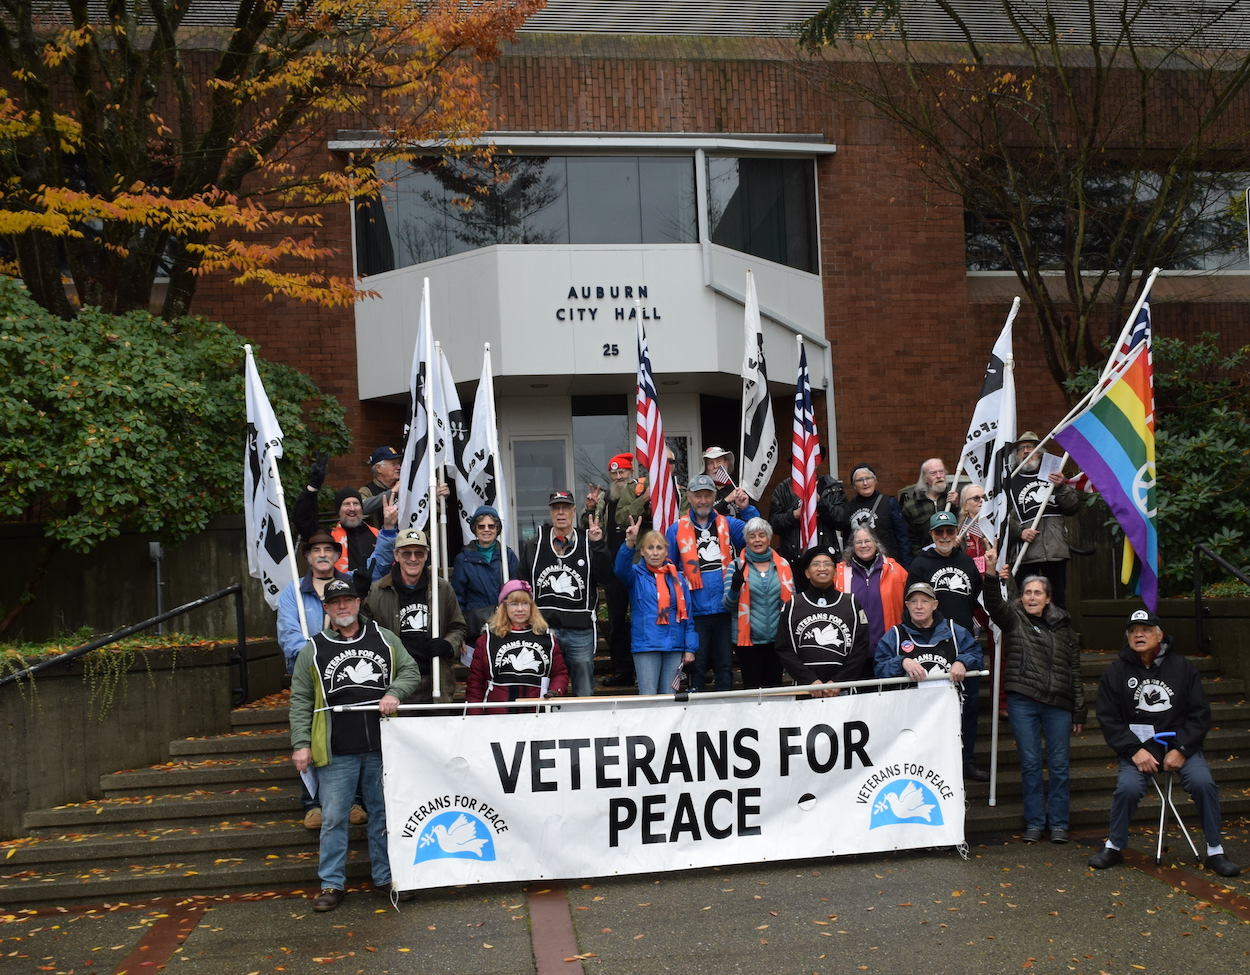 Seattle Peace Chorus Action Ensemble posing with Veterans for Peace before the Auburn City Hall